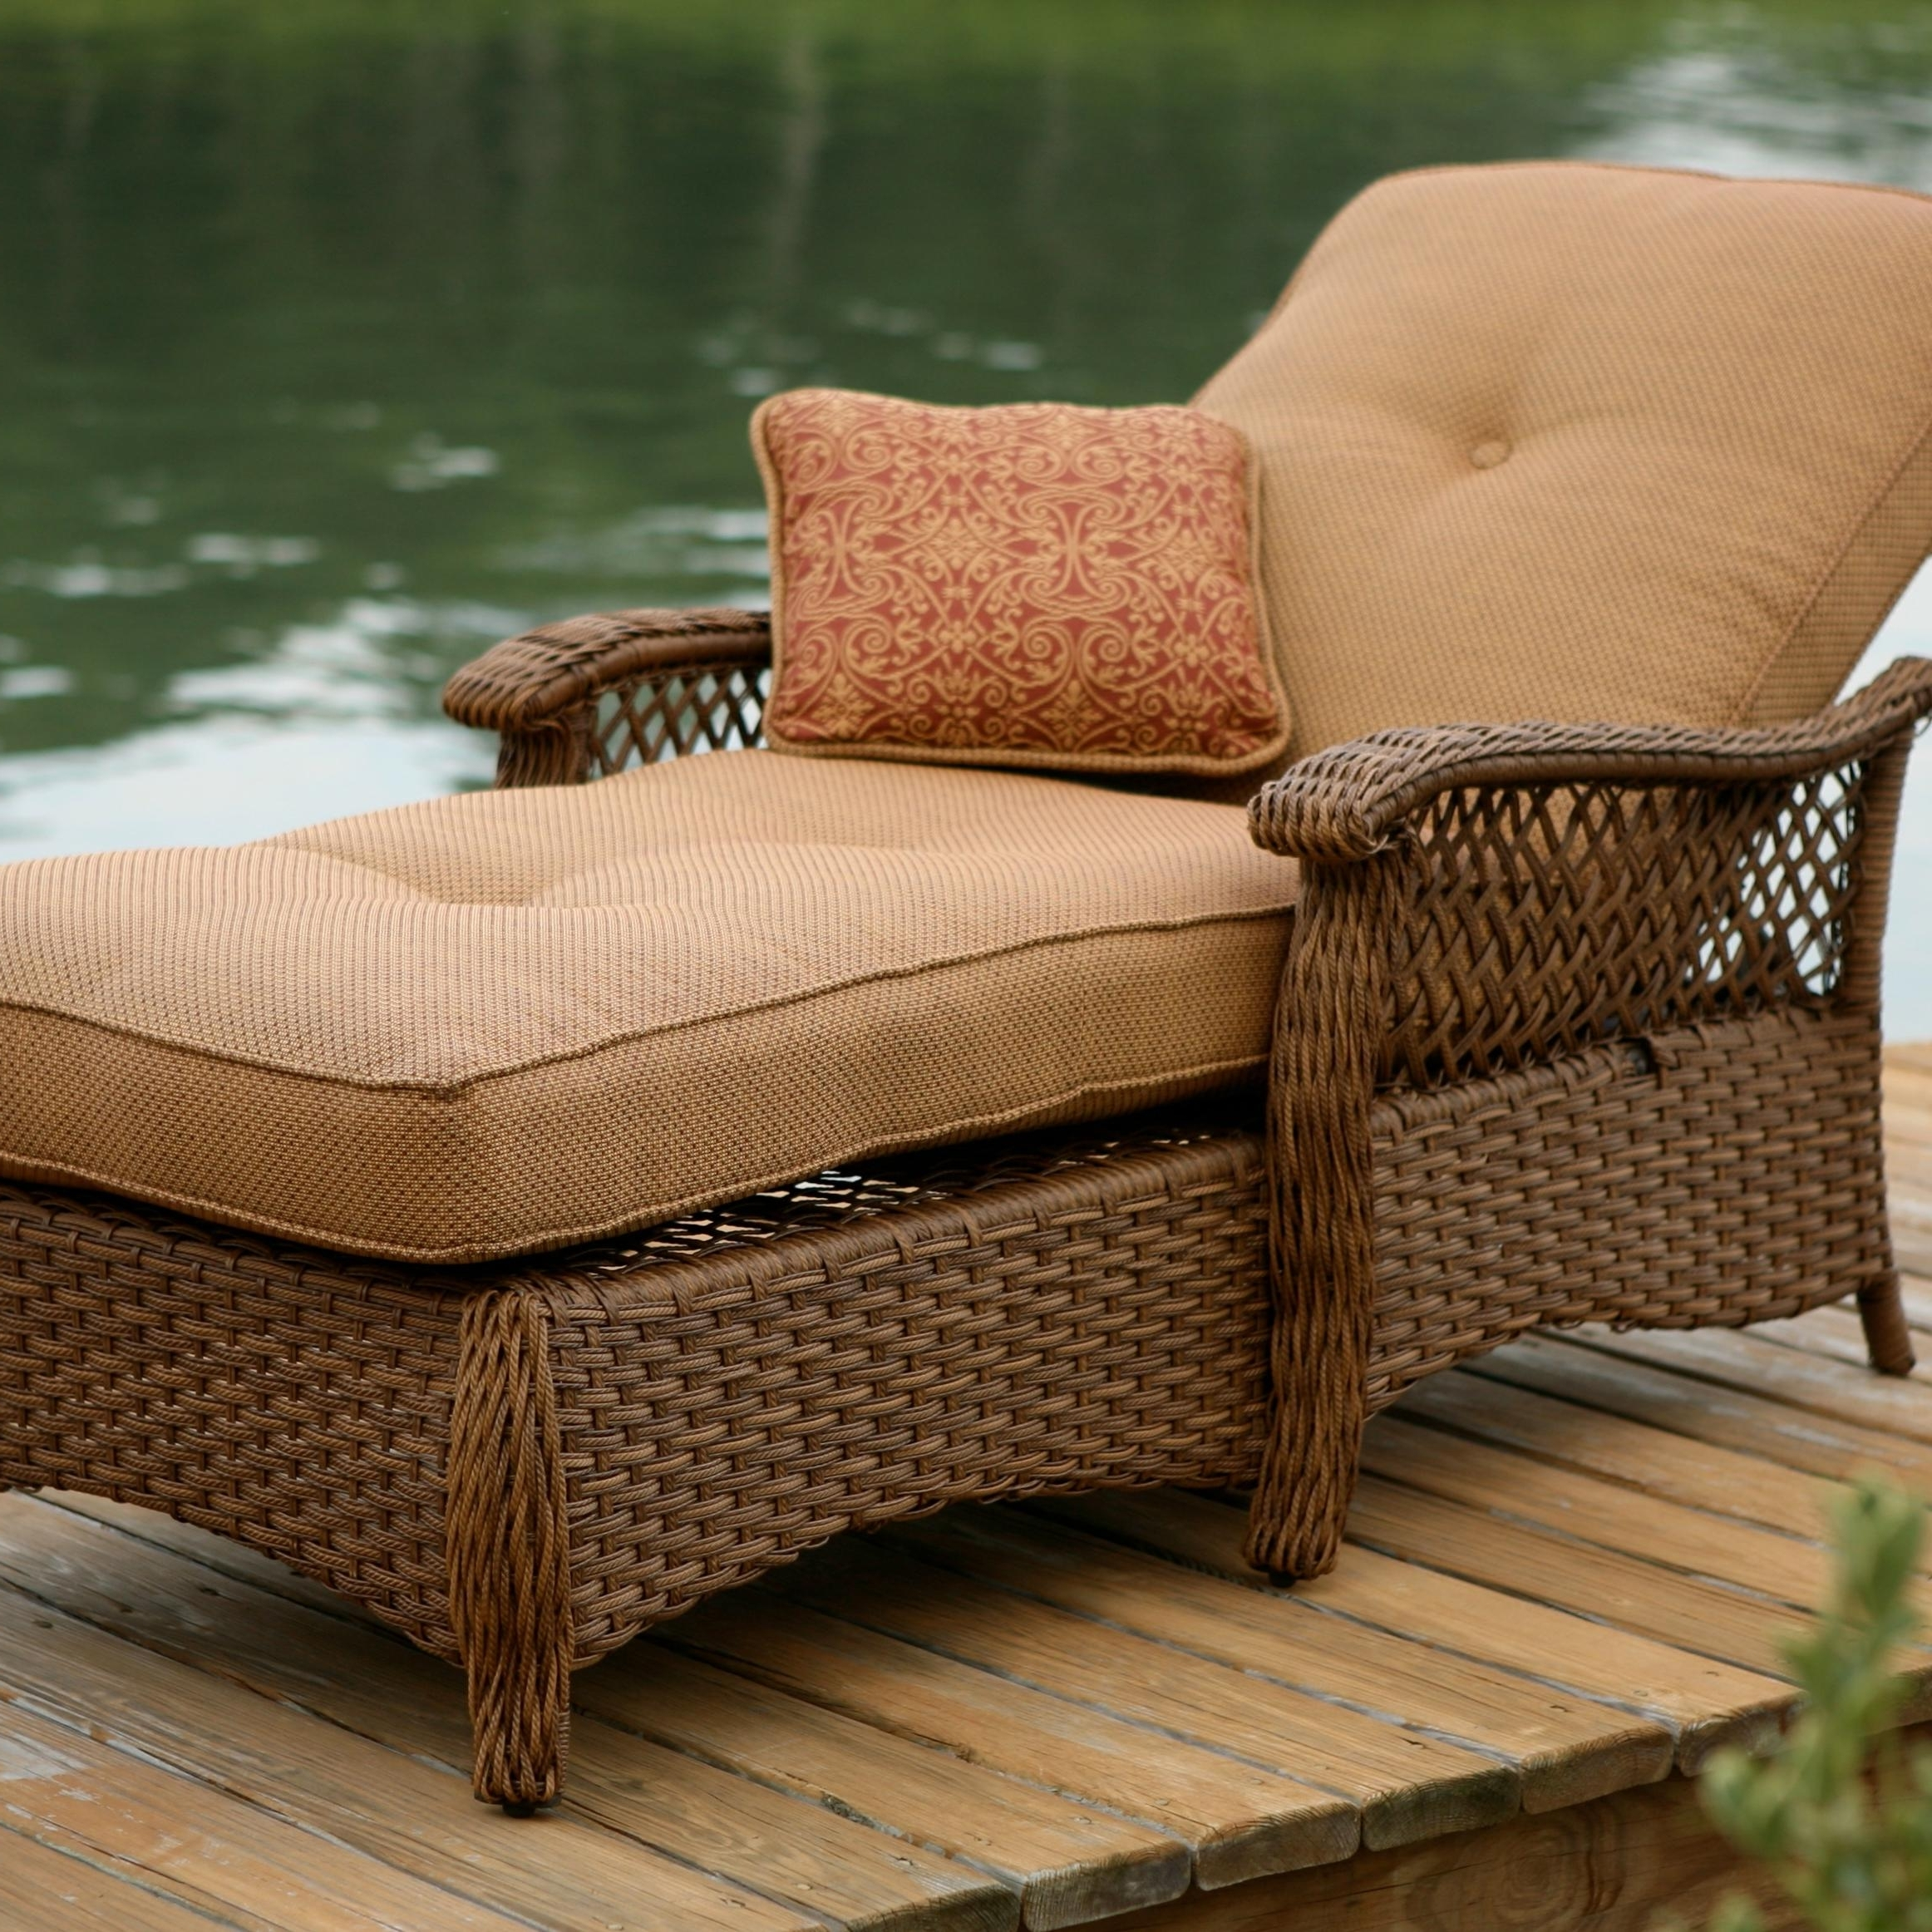 Famous Agio Veranda–agio Outdoor Tan Woven Chaise Lounge Chair With Seat With Wicker Chaise Lounge Chairs (View 4 of 15)